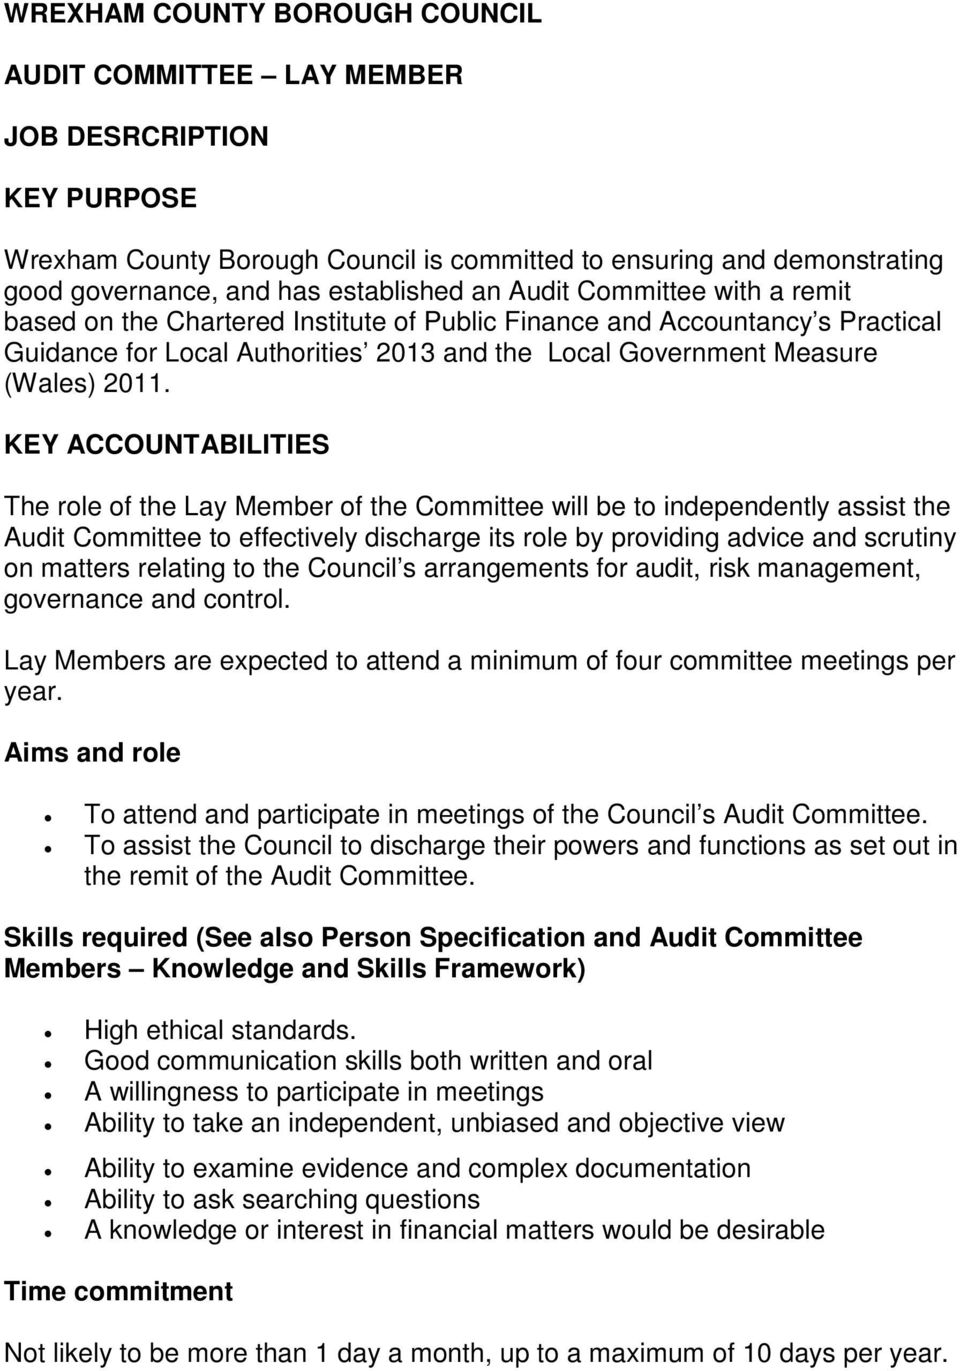 KEY ACCOUNTABILITIES The role of the Lay Member of the Committee will be to independently assist the Audit Committee to effectively discharge its role by providing advice and scrutiny on matters